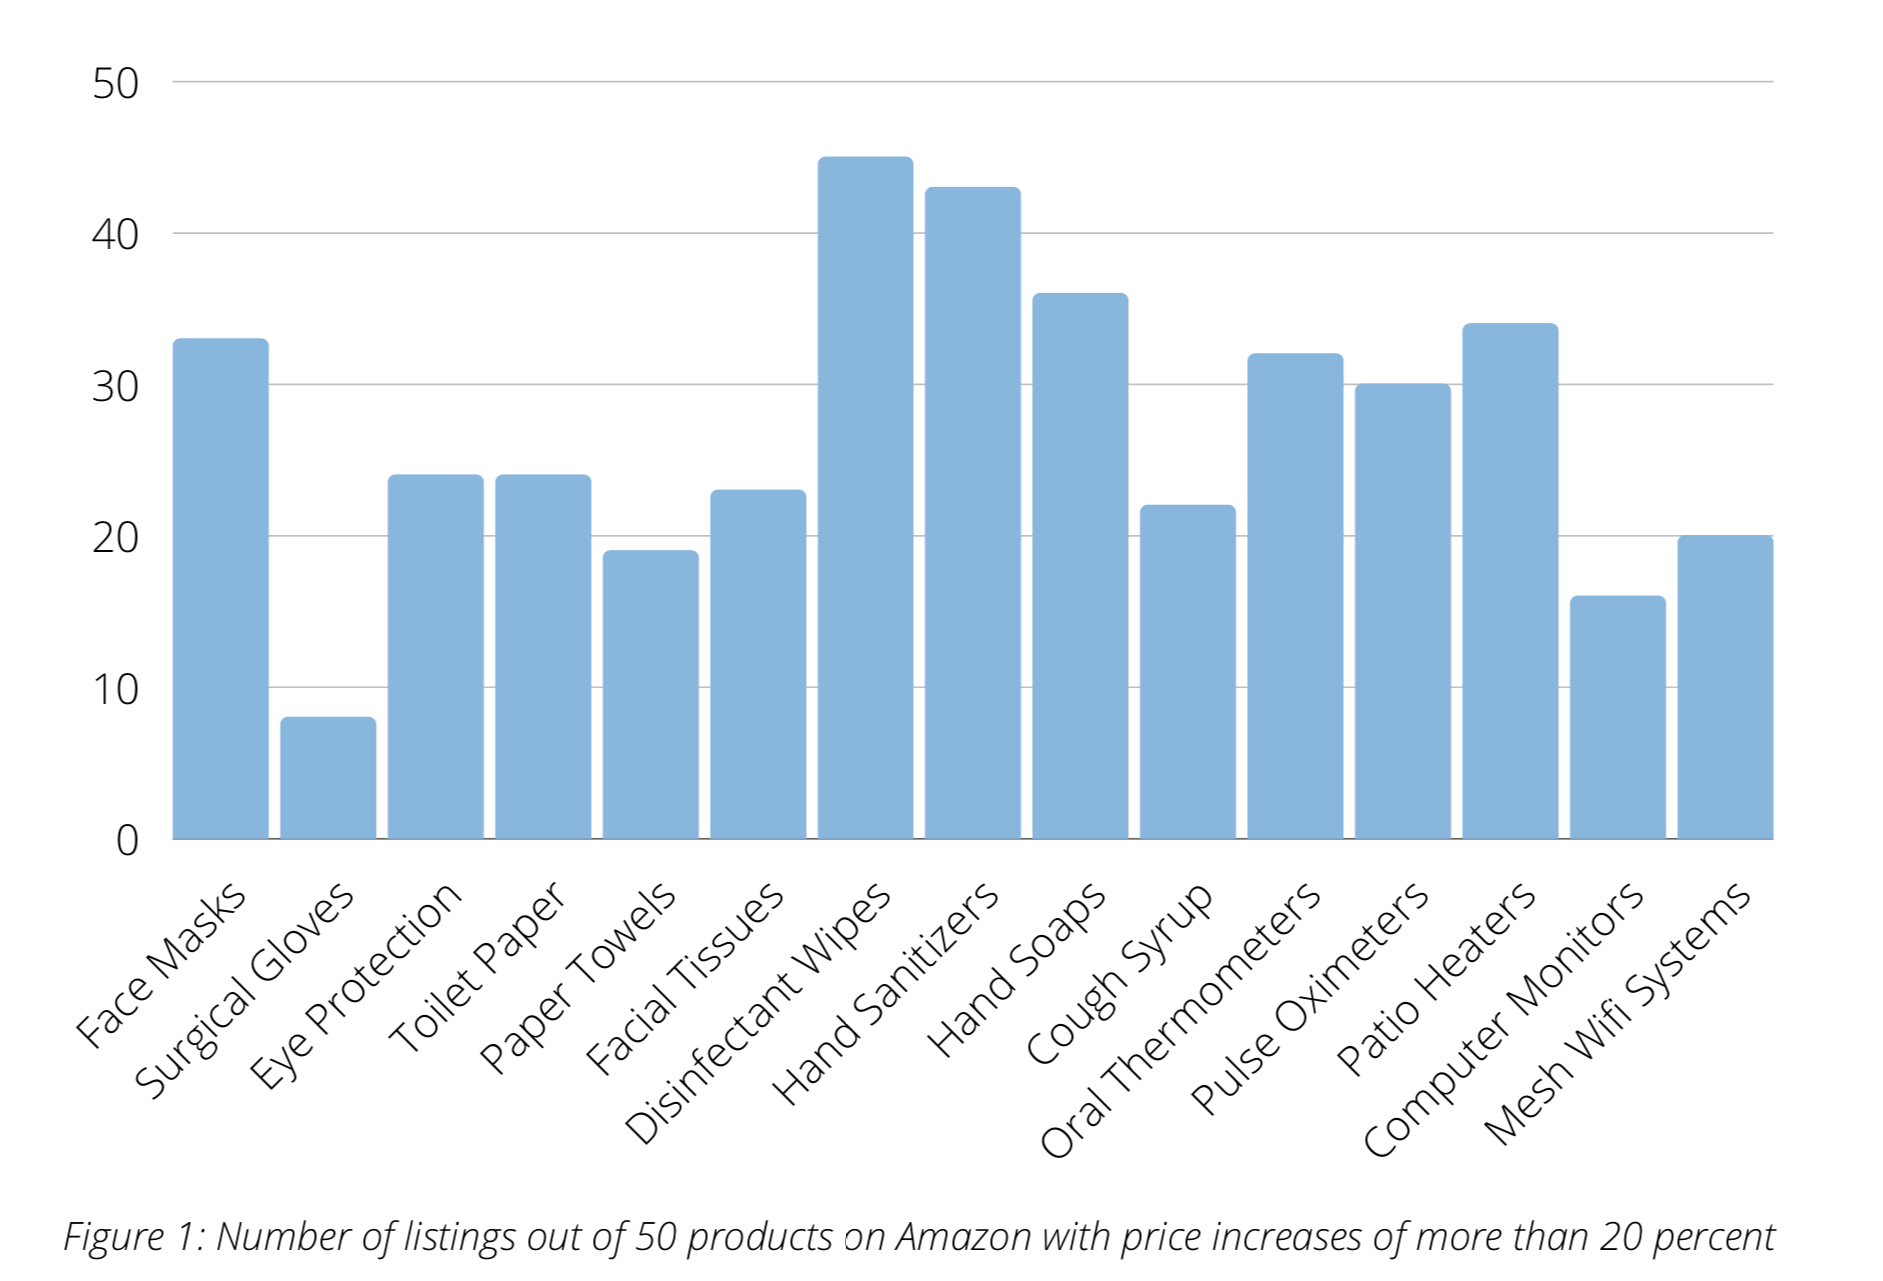 Figure 1. Number of listing out of 50 products on Amazon with price increases of more than 20 percent.